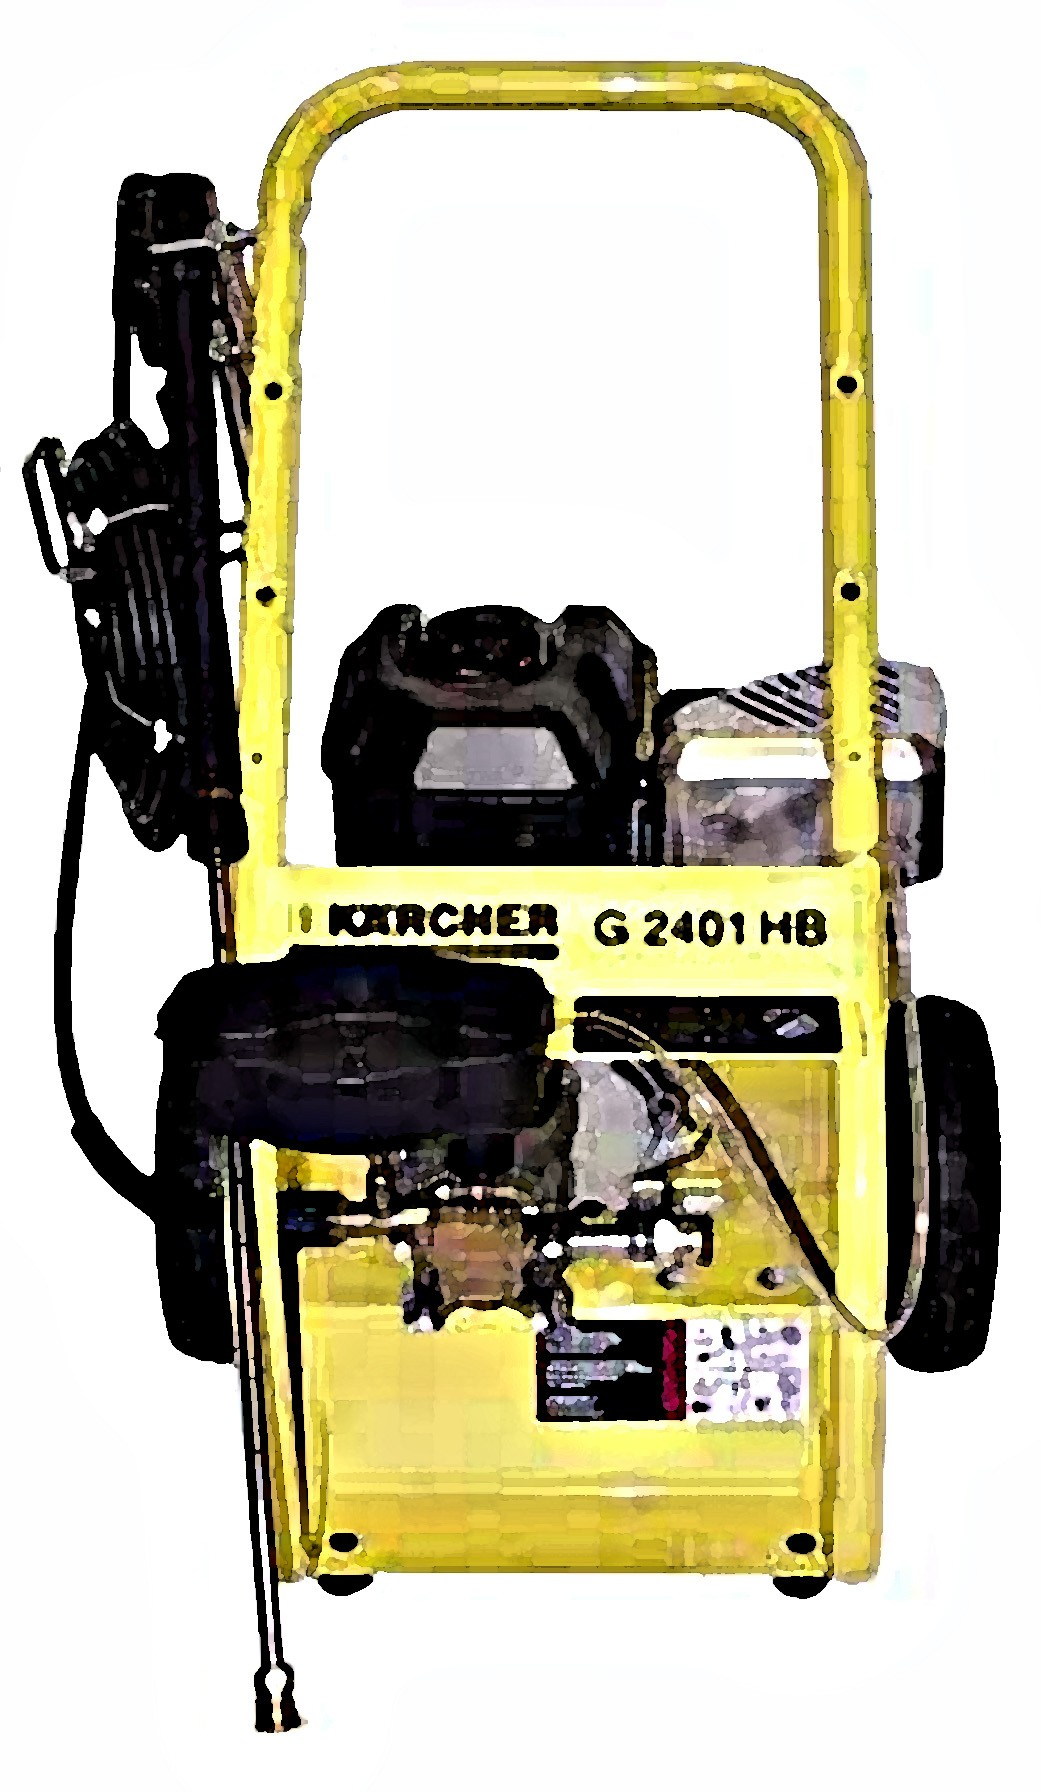 Register For A Chance To Win A Brand New Karcher 2 400 Psi